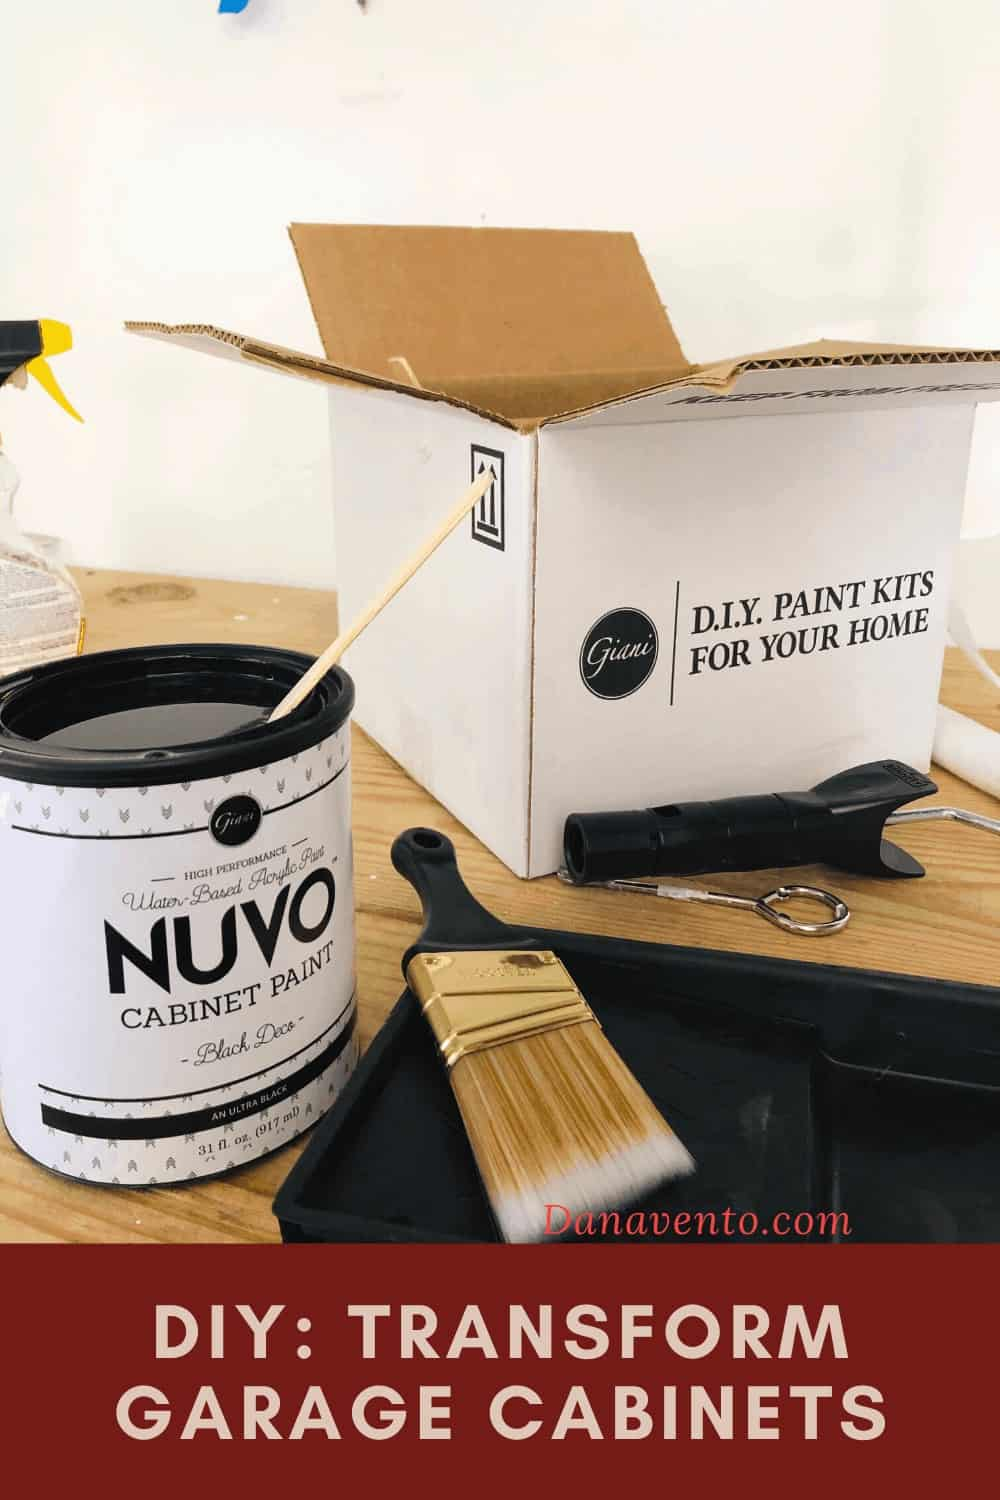 Giani Granite NUVO DIY Cabinet Paint Kit - to Paint Cabinets